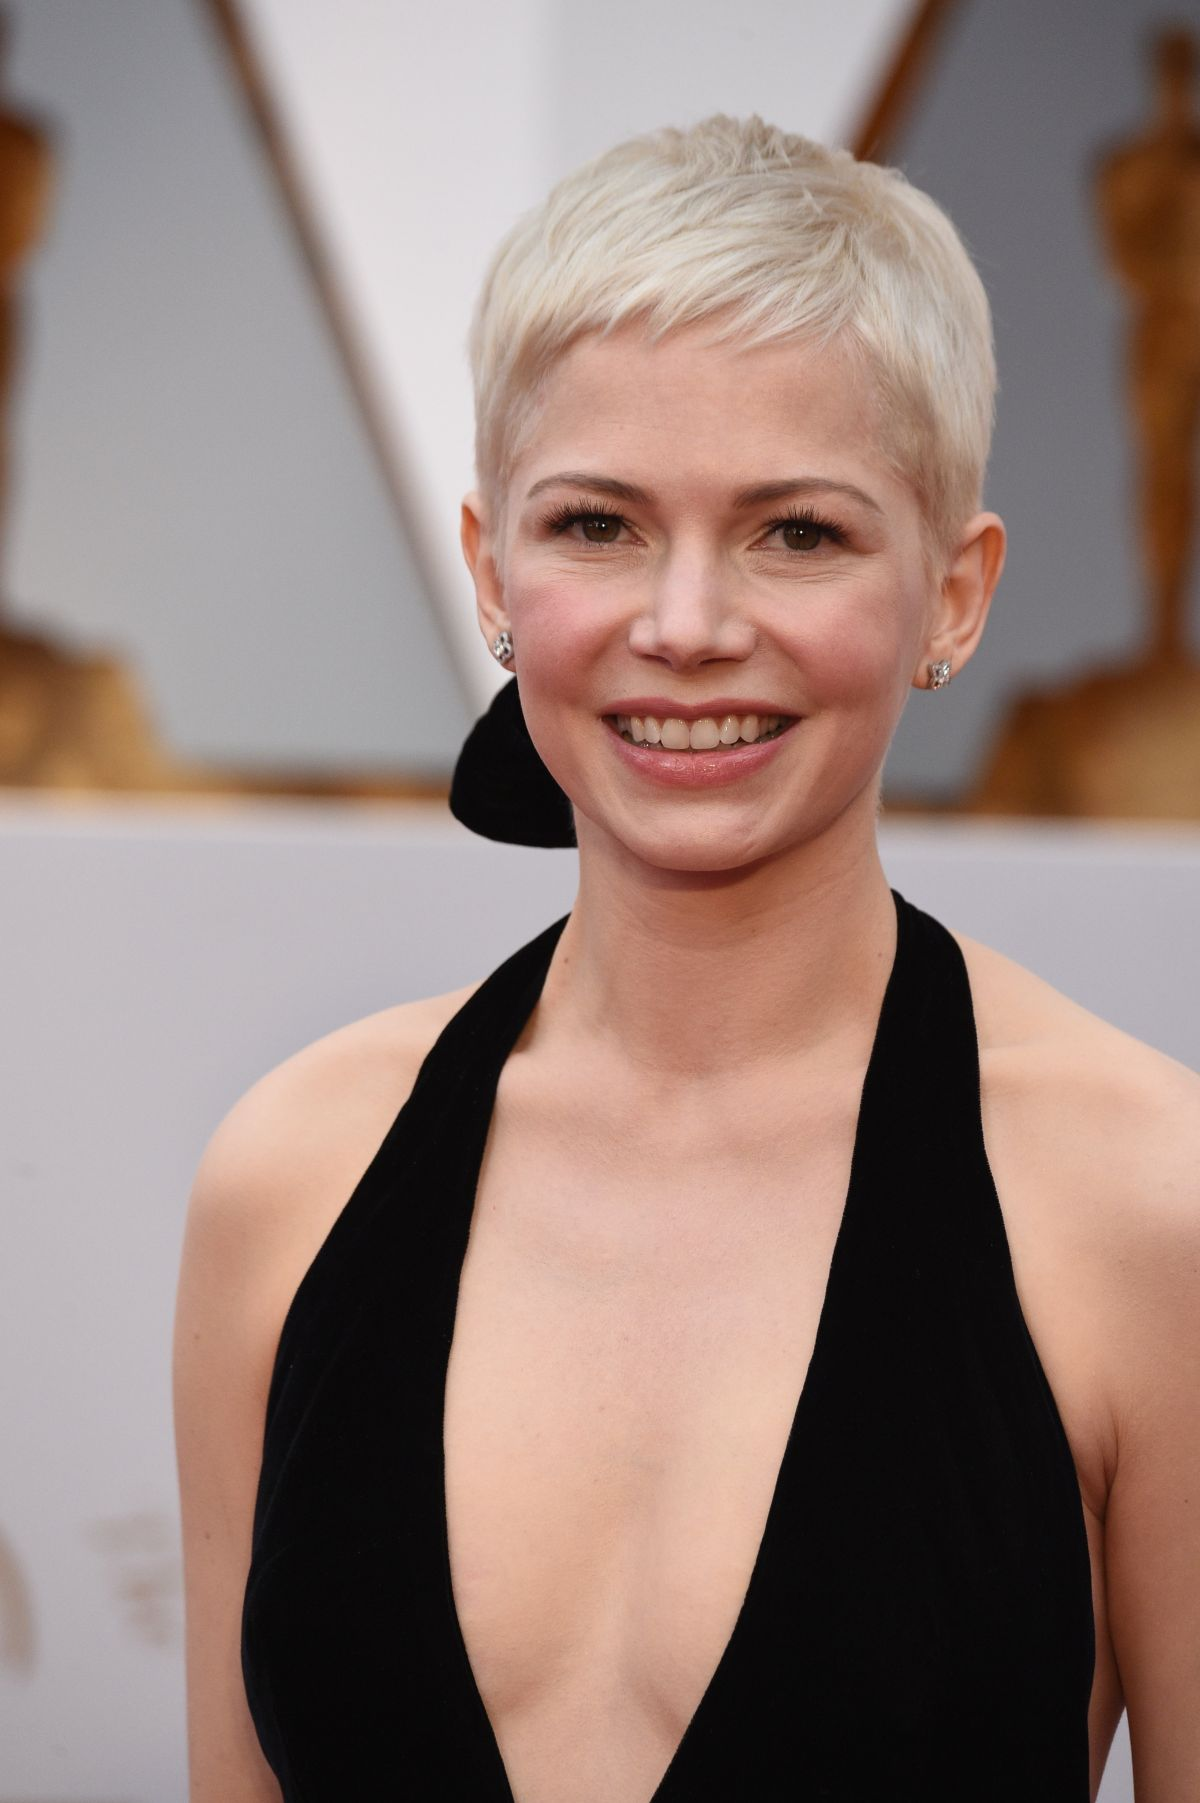 michelle williams - photo #11